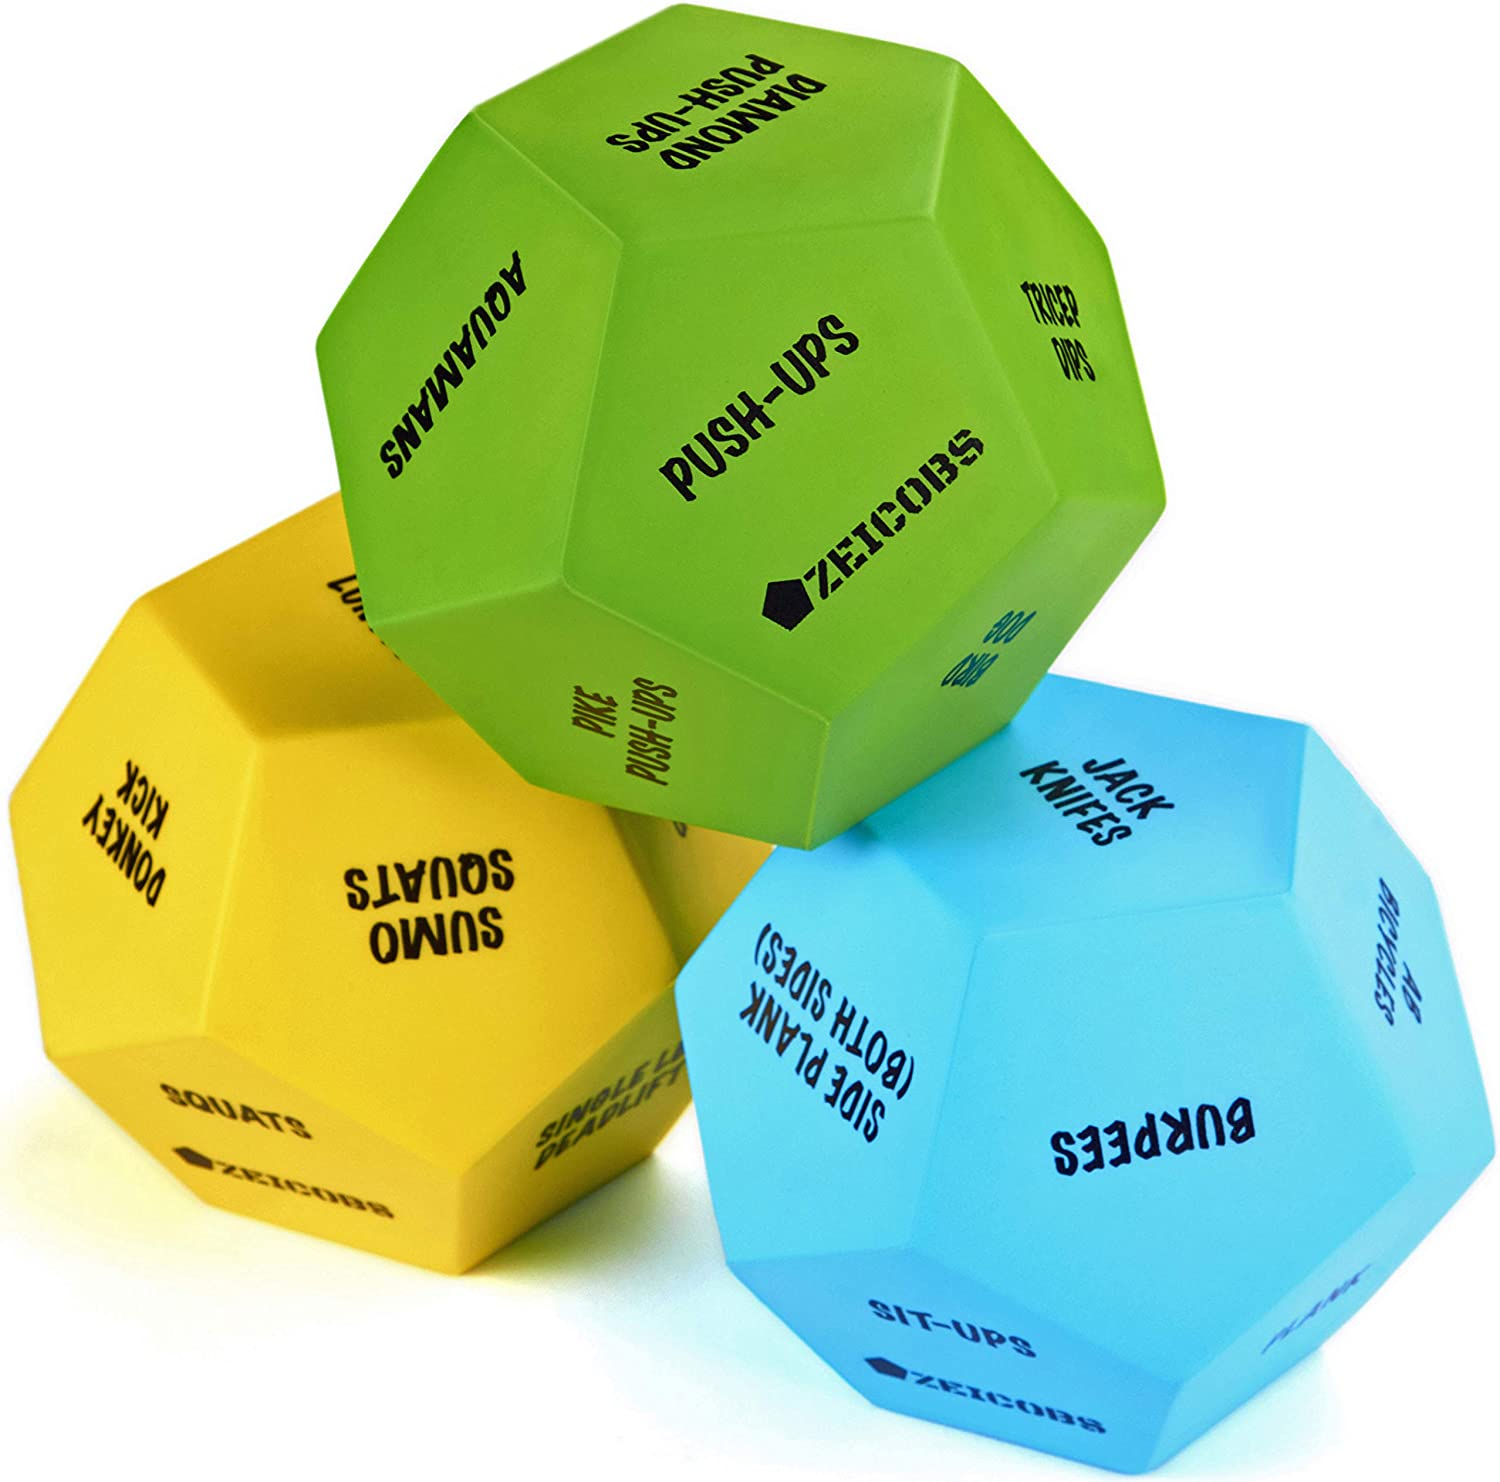 Zeicobs Exercise Dice for Home Workouts - Fitness Dice with 36 Unique Exercises and Instructions - 3 Pack Workout Dice for Gym, Crossfit WOD, Bodyweight HIIT, Cardio and Sports Training